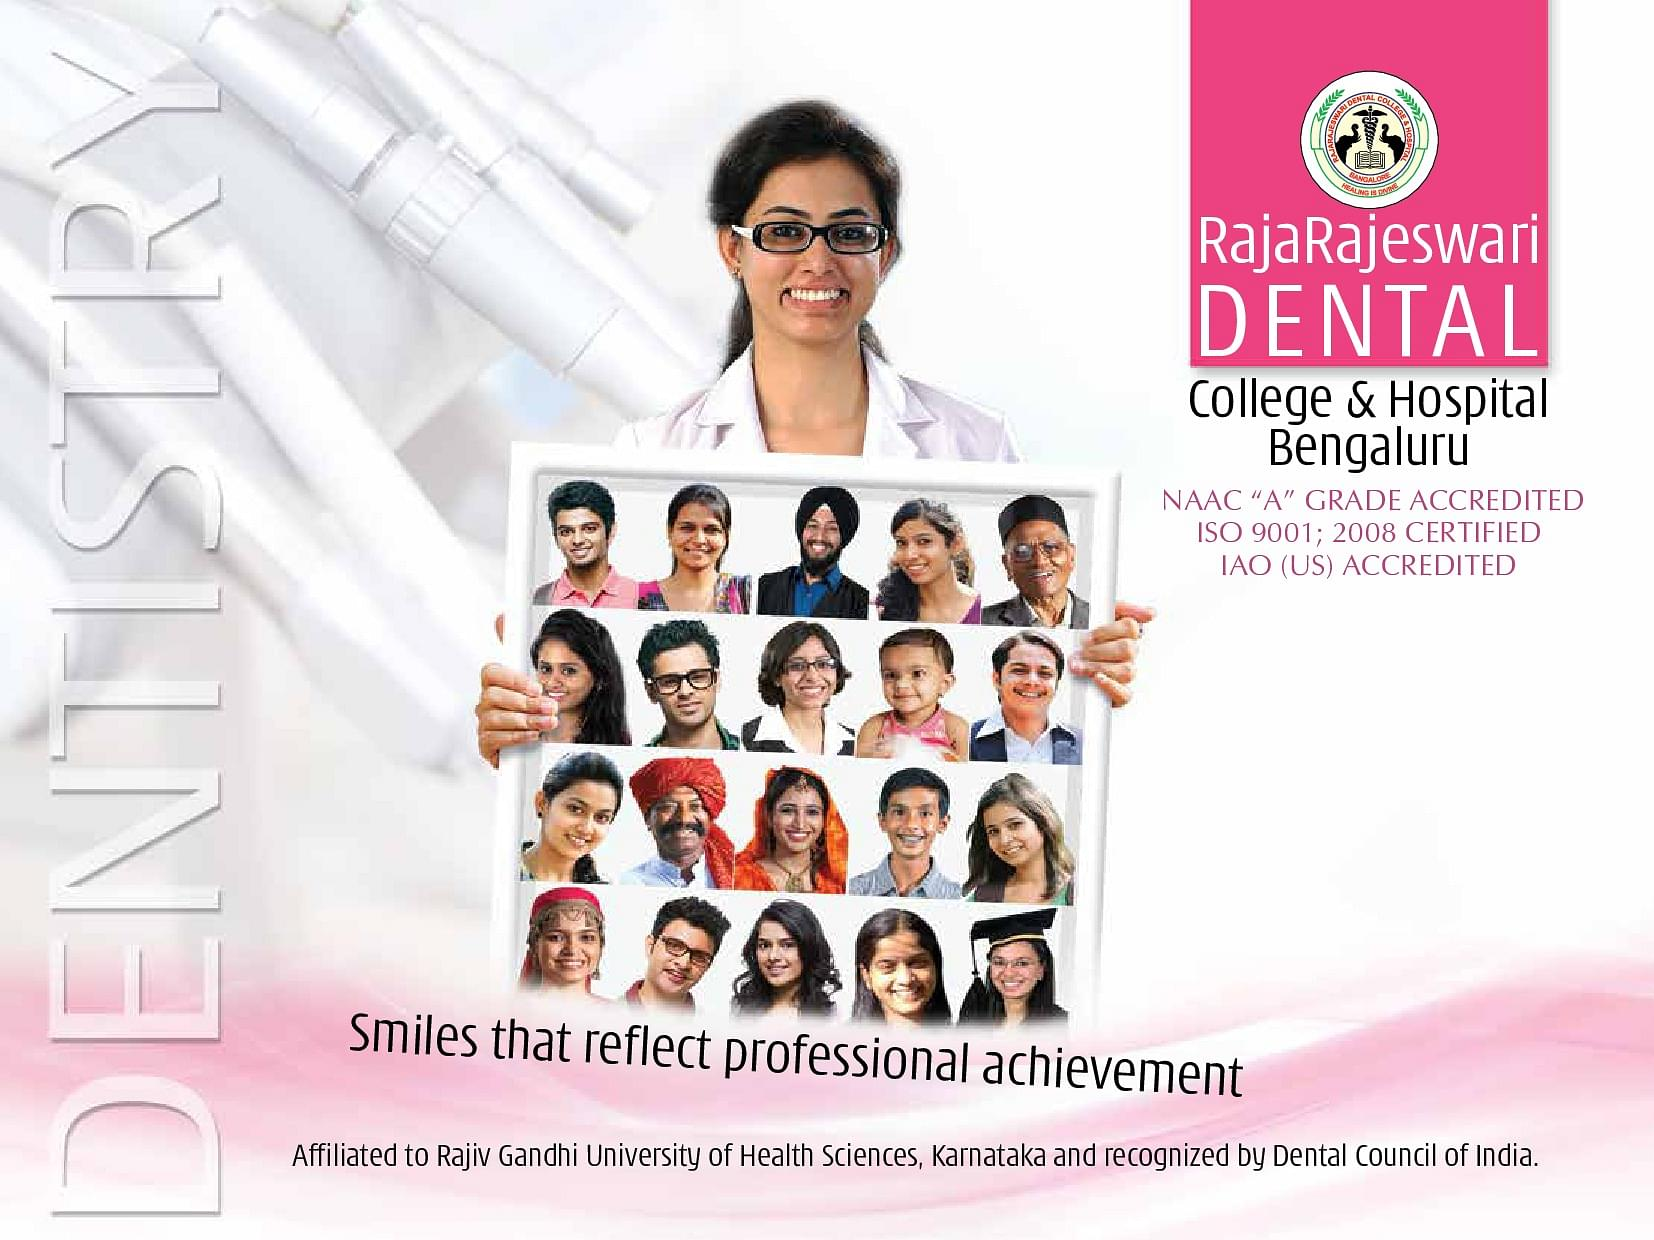 Traditional dress of karnataka pictures of dental colleges